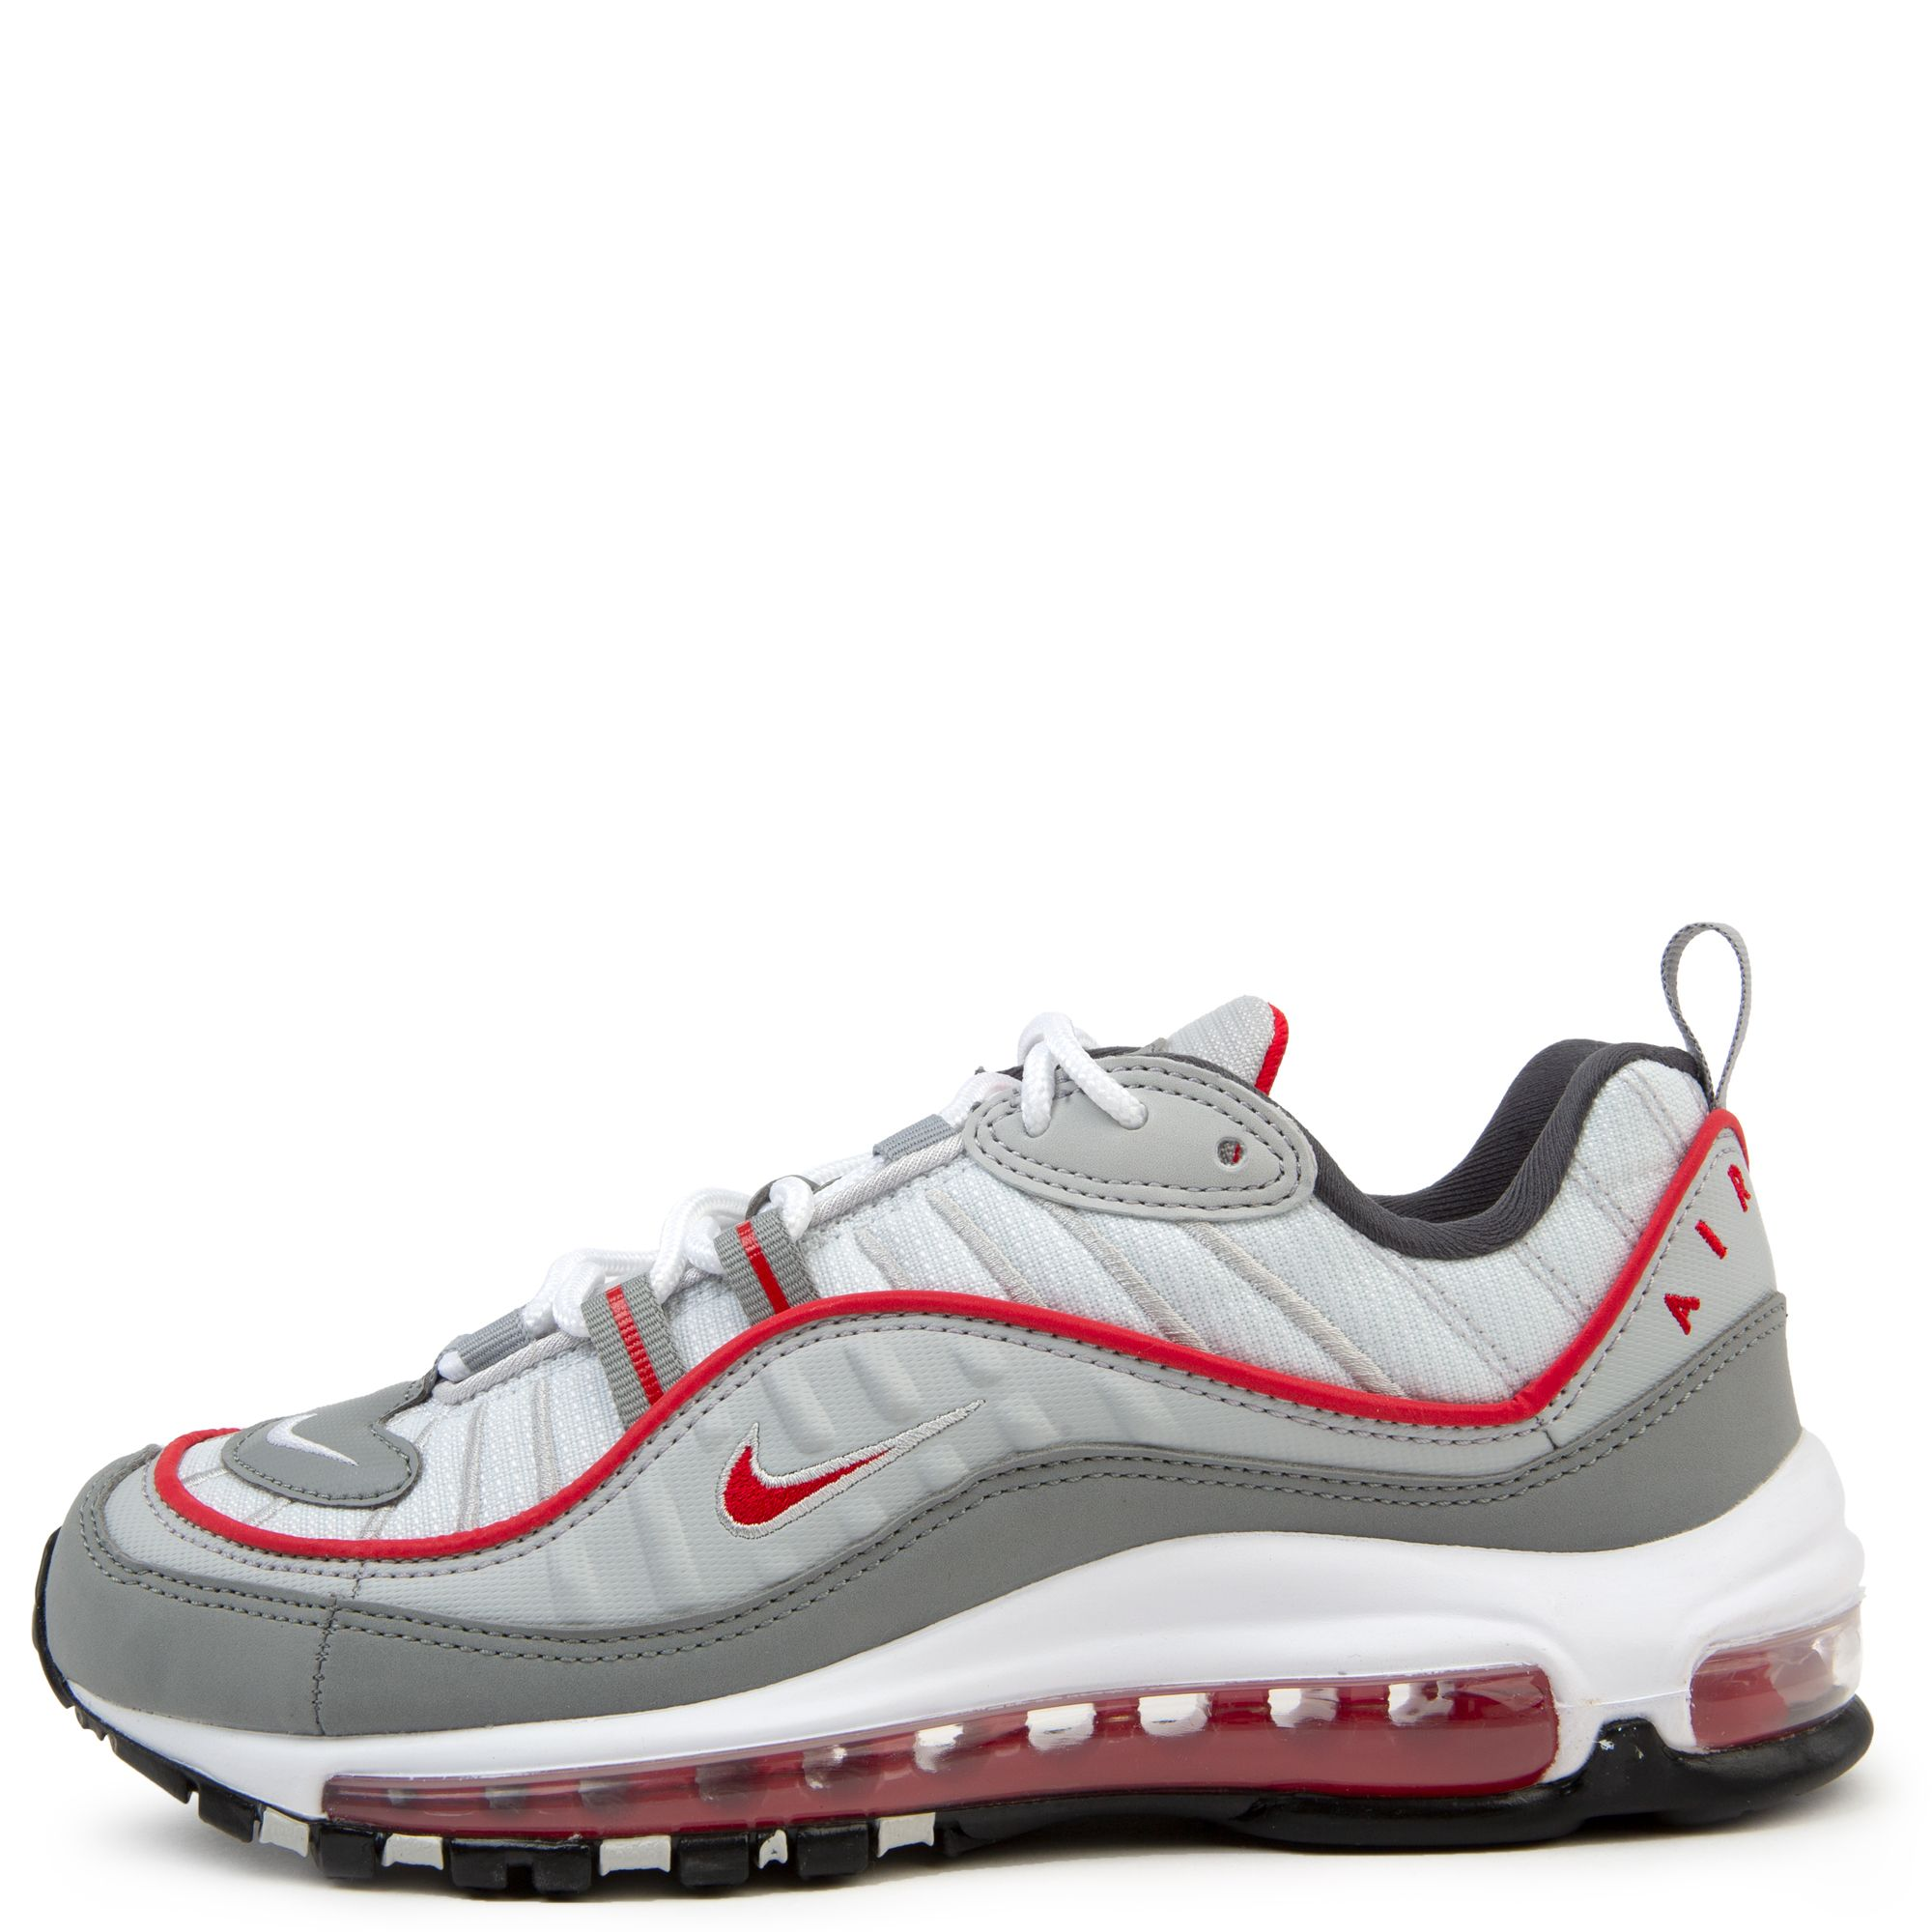 (GS) Air Max 98 White/University Red